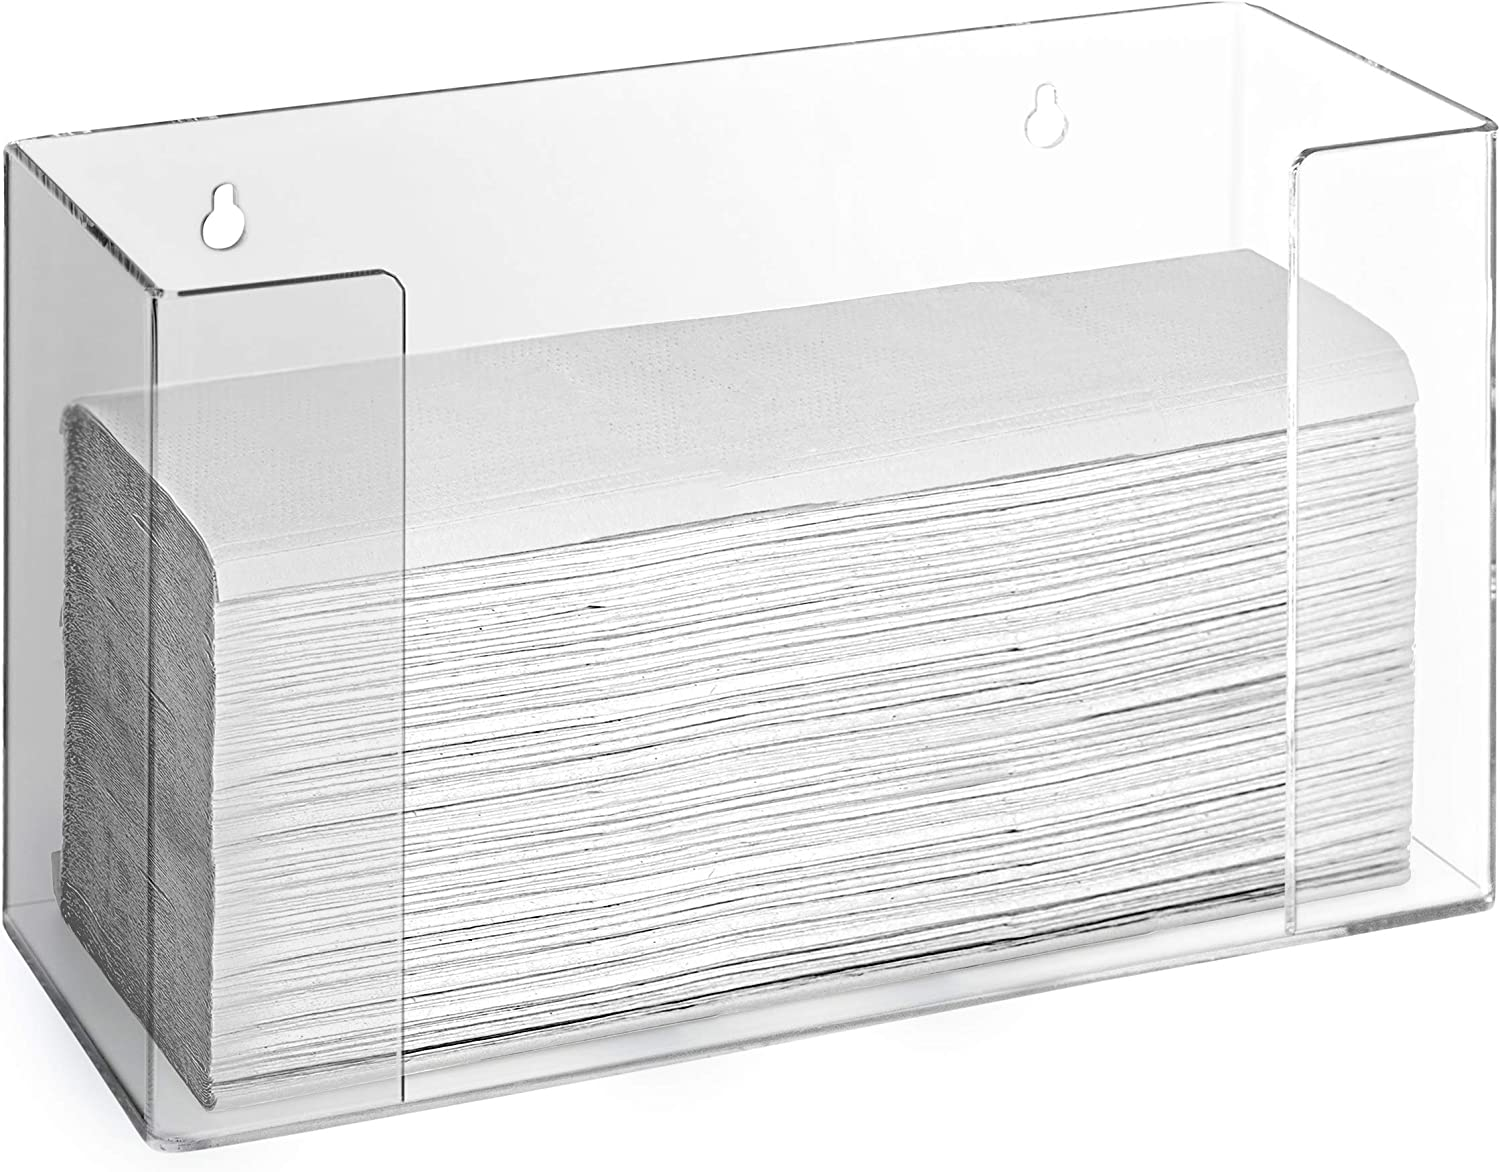 Stock Your Cheap mail order specialty store Very popular Home Acrylic Paper Towel Tow - Folded Dispenser